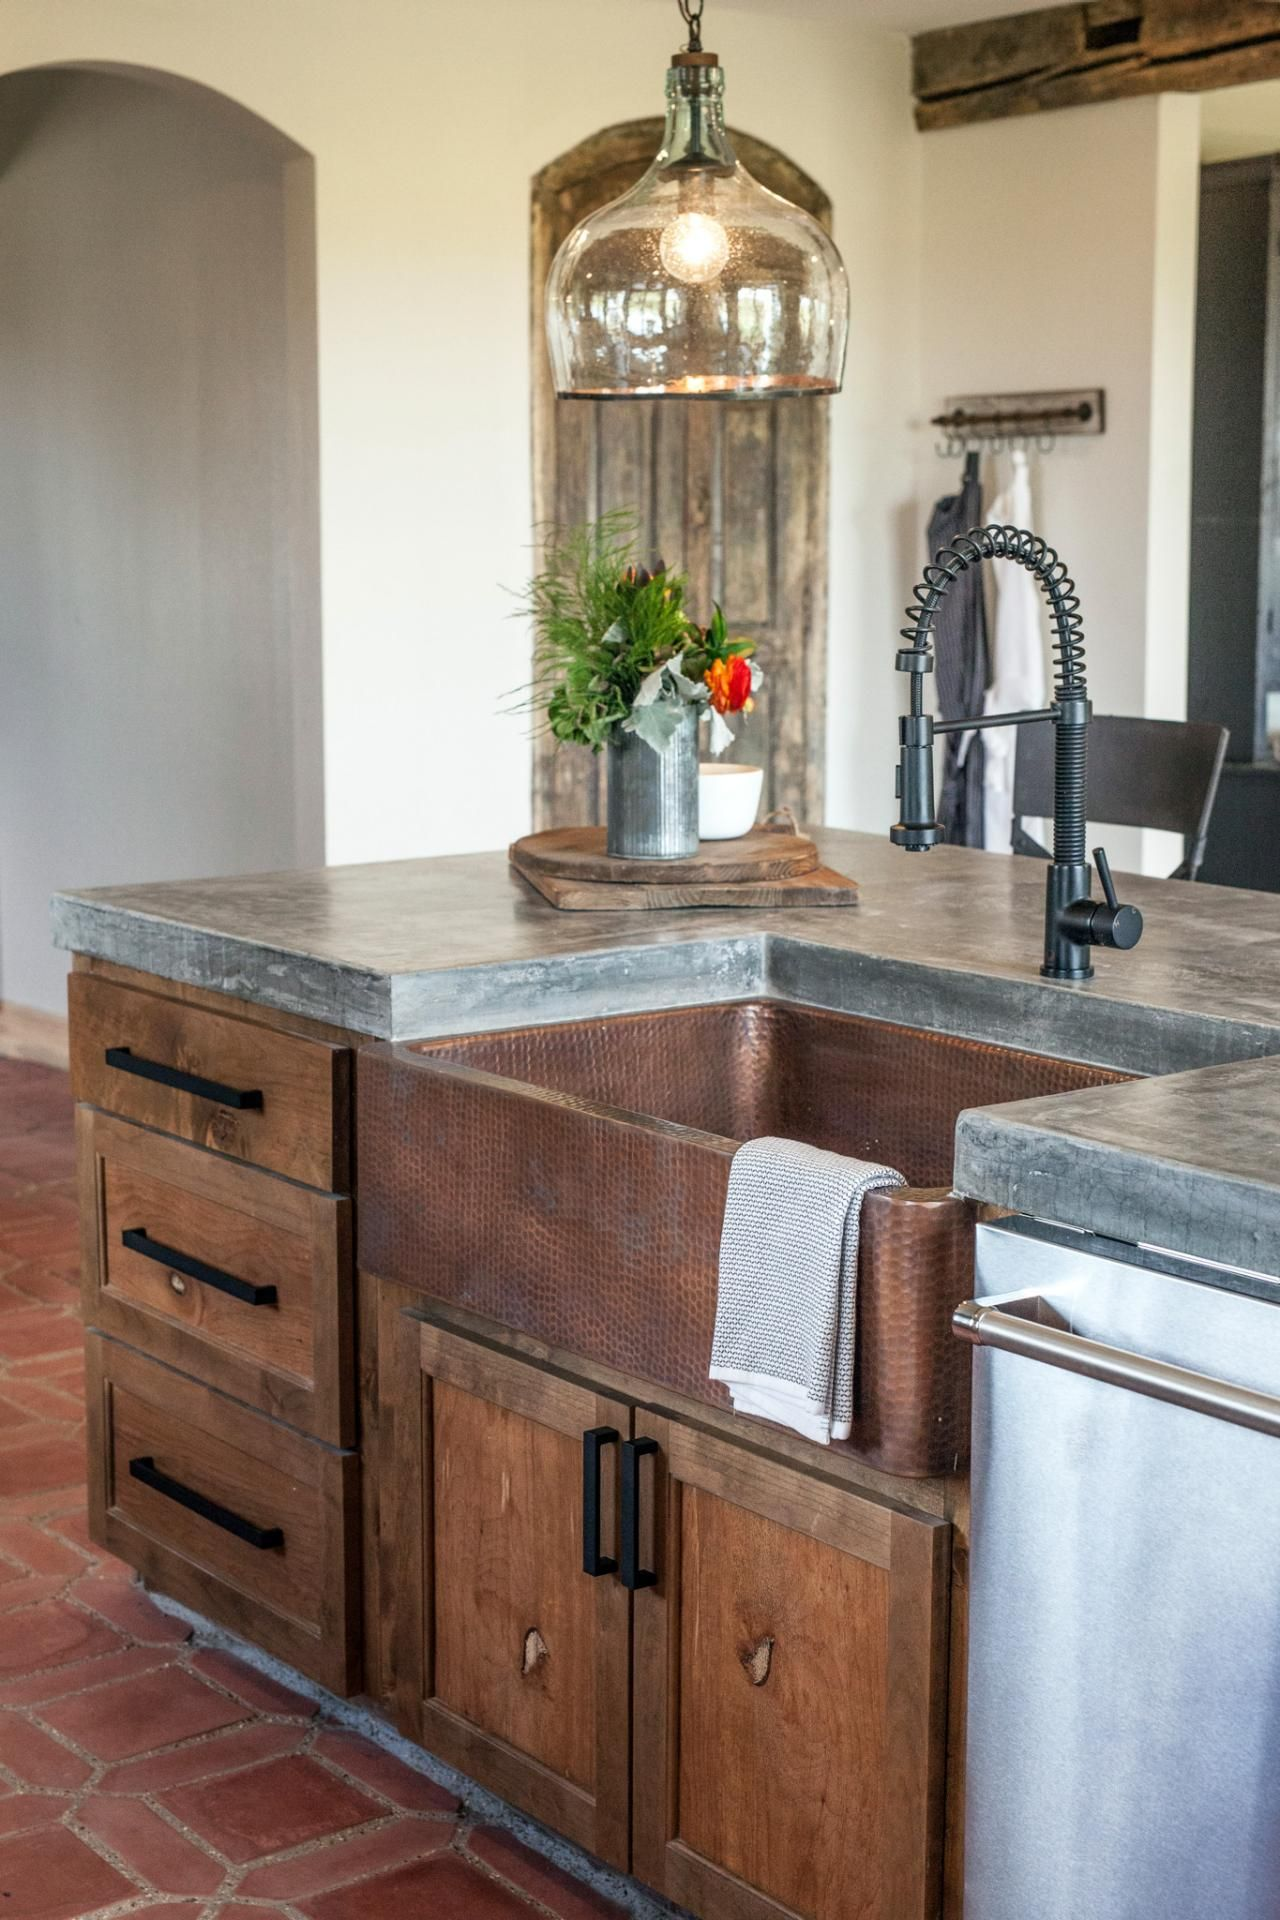 Hgtv fixer upper kitchen faucet - Hgtv S Fixer Upper Carriage House Kitchen Hgtv Videos Pinterest Gray Carriage House And Gray Paint